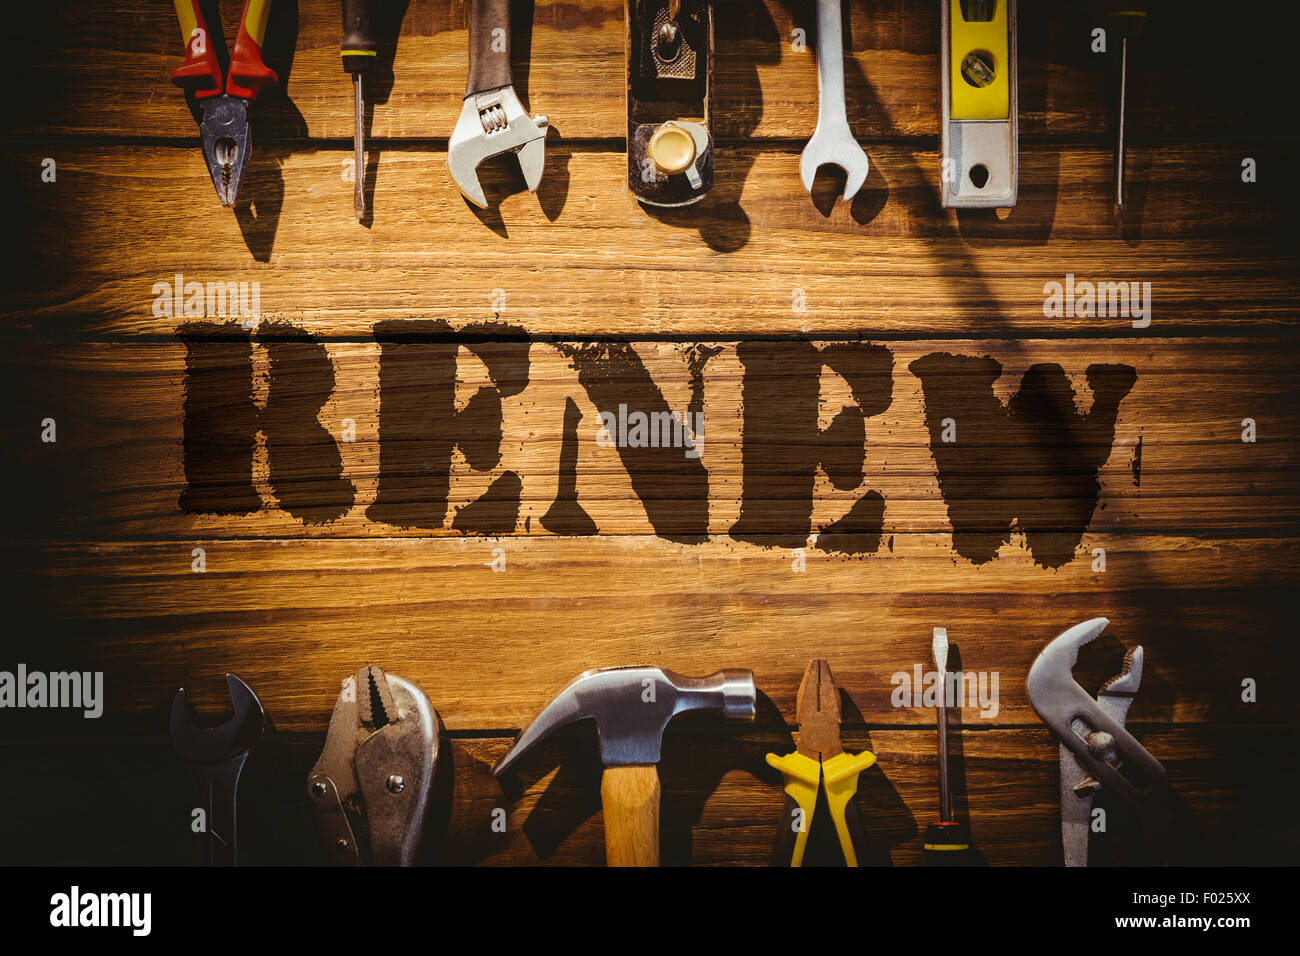 Renew against desk with tools - Stock Image